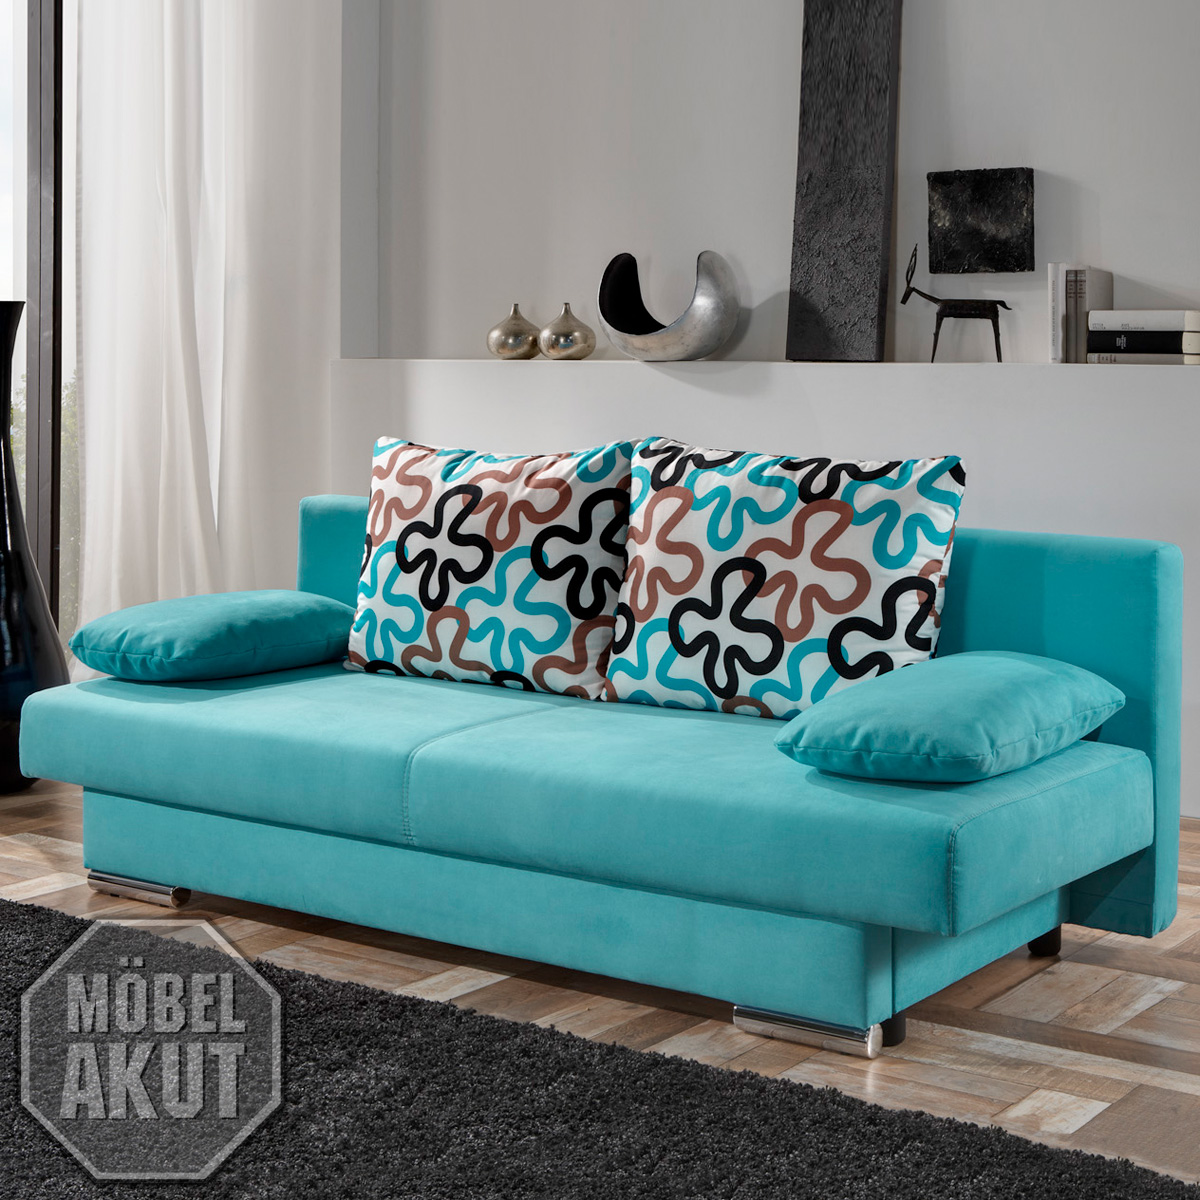 modernes schlafsofa tiffany sofa in t rkis petrol neu ebay. Black Bedroom Furniture Sets. Home Design Ideas